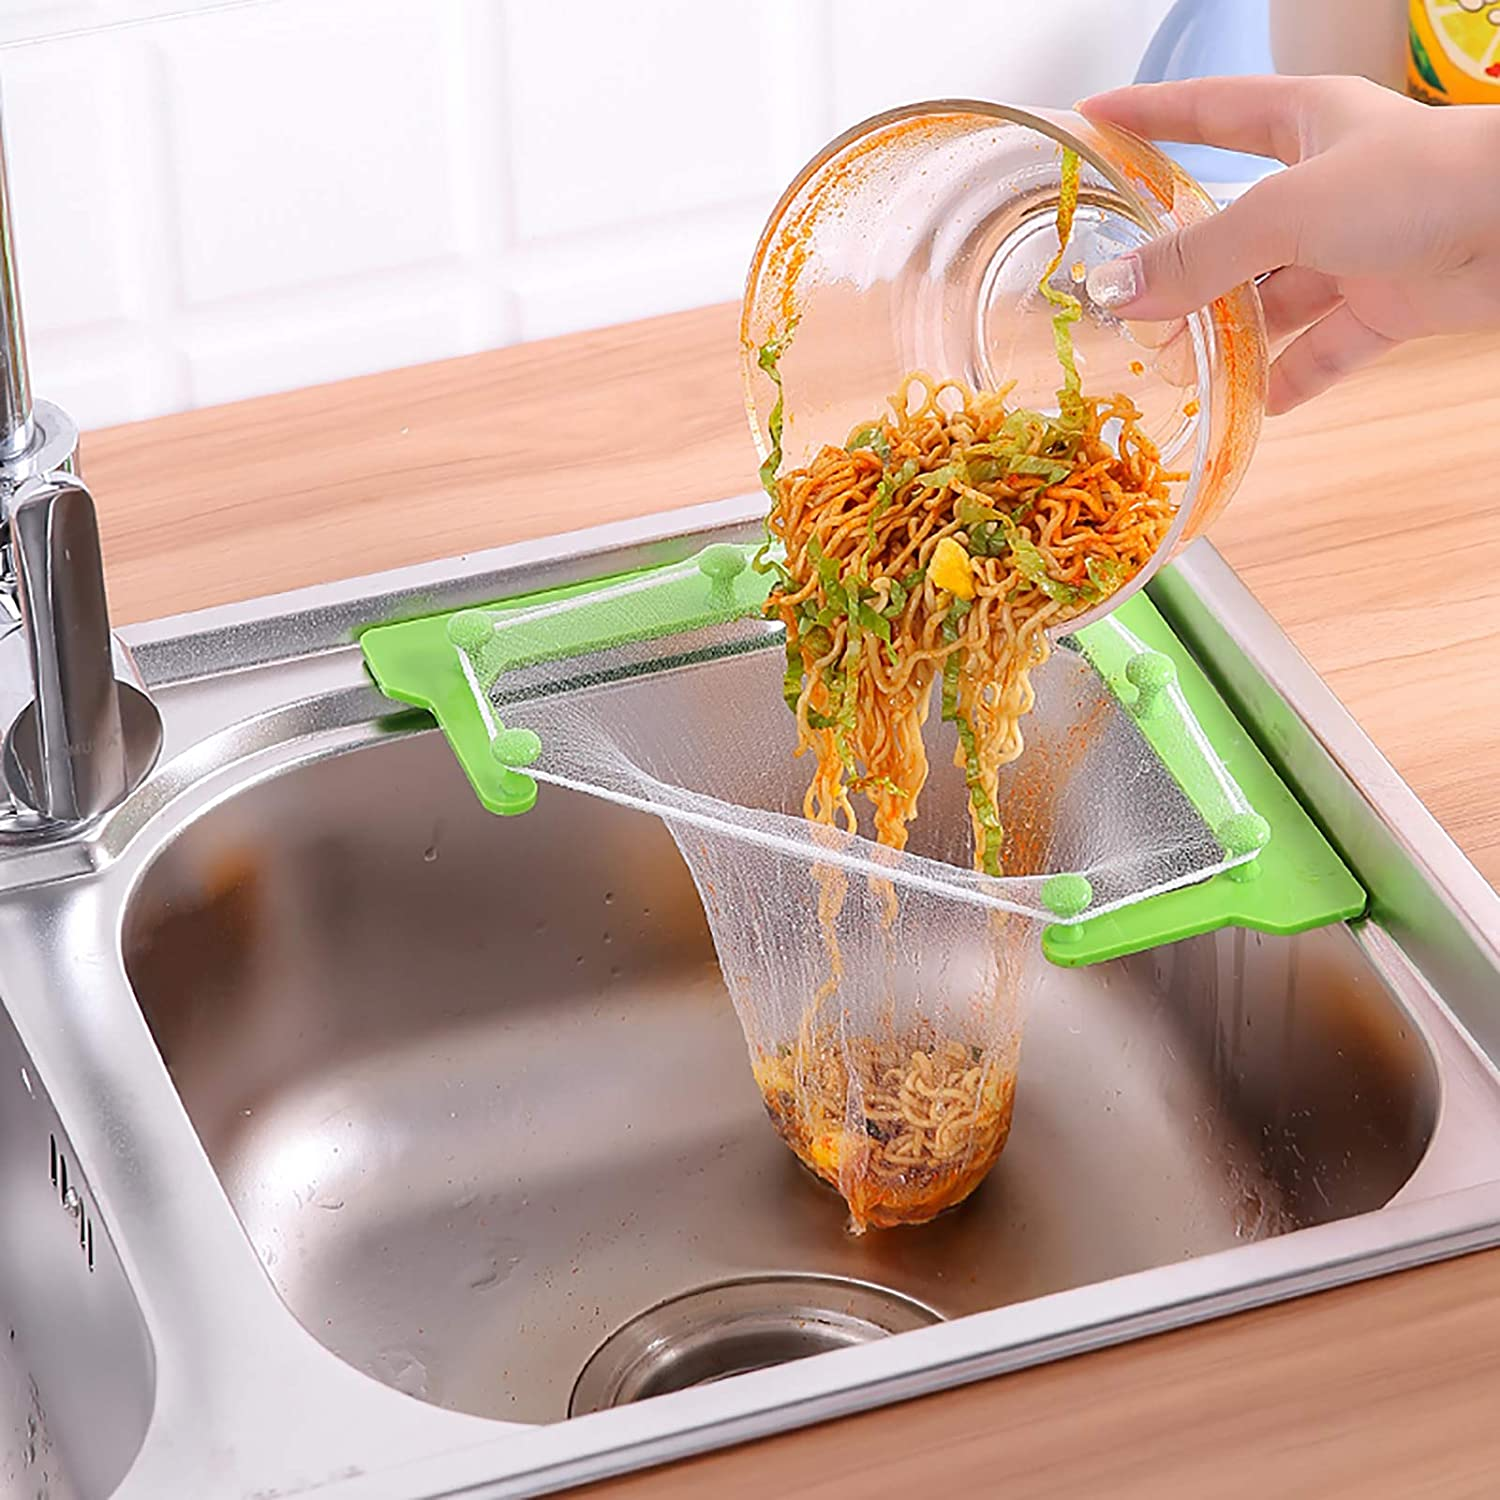 Sink Strainer Bag,Triangle Sink Strainer Bags,Disposable Sink Filter Fine Mesh Bags Kitchen Sink Storage Holder Sink Garbage Bags for Kitchen Leftovers Food Residue Filter